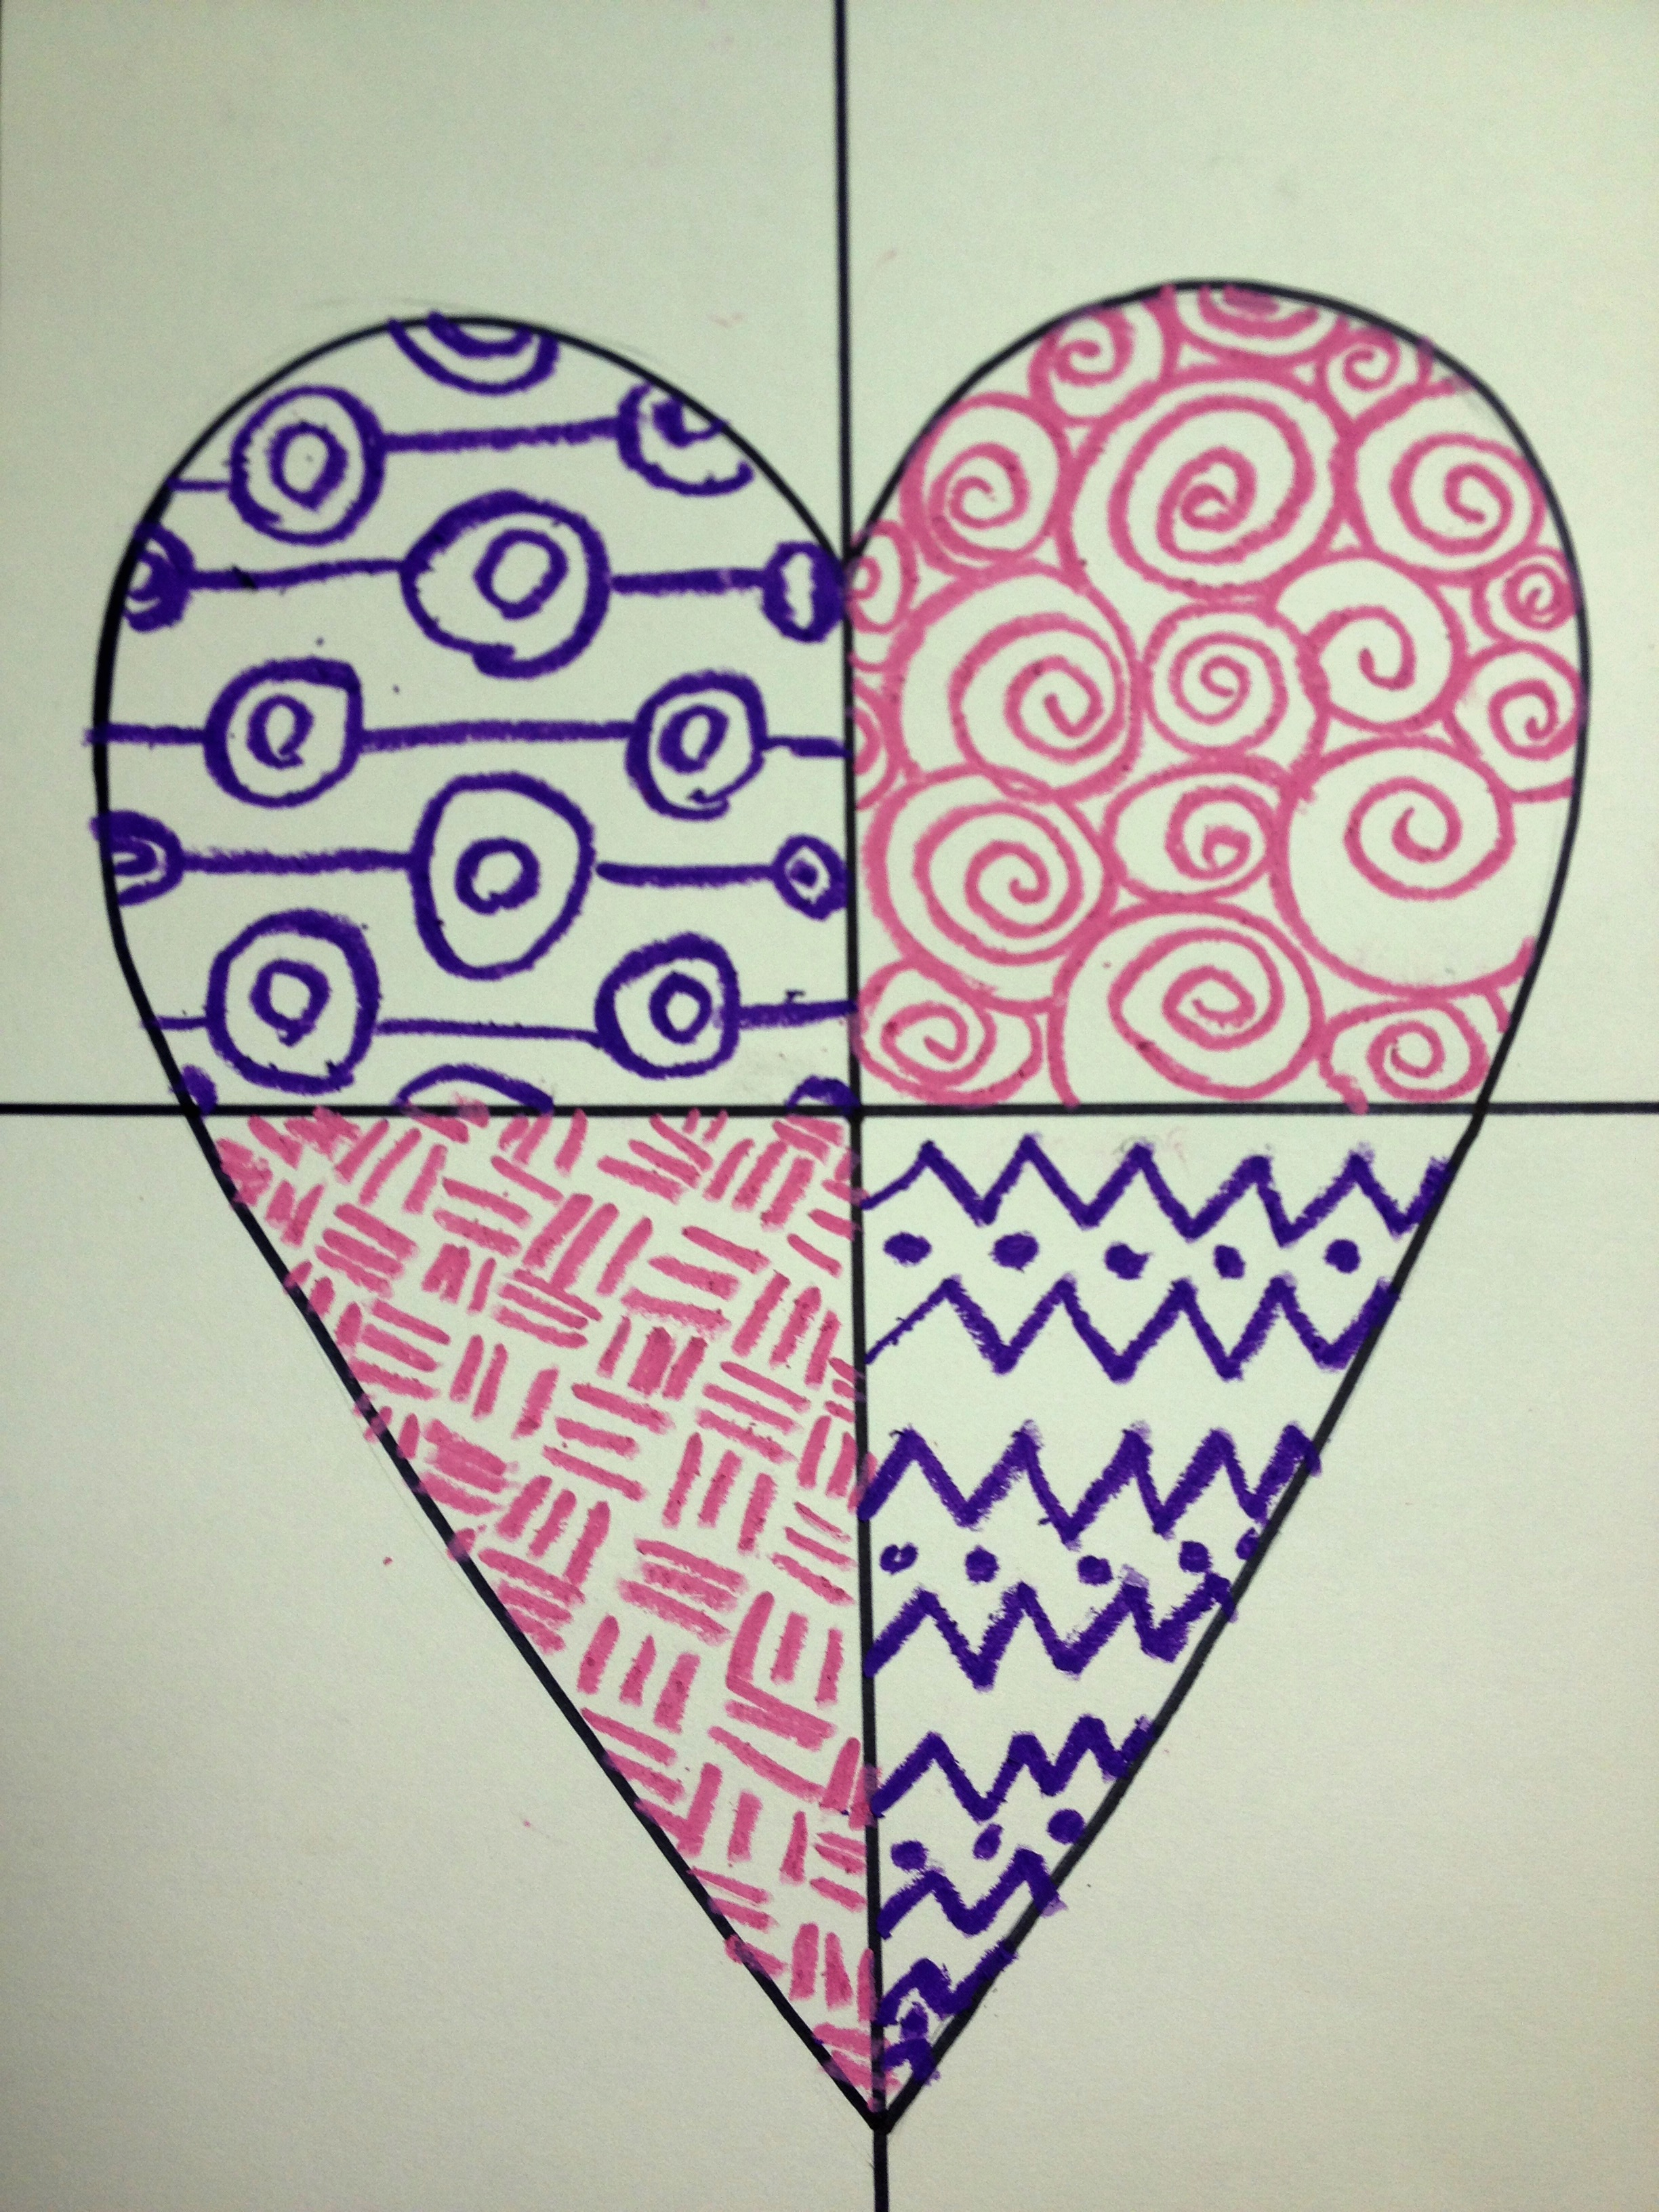 Cool Art Designs To Draw : Heart art mixed media lesson create with me